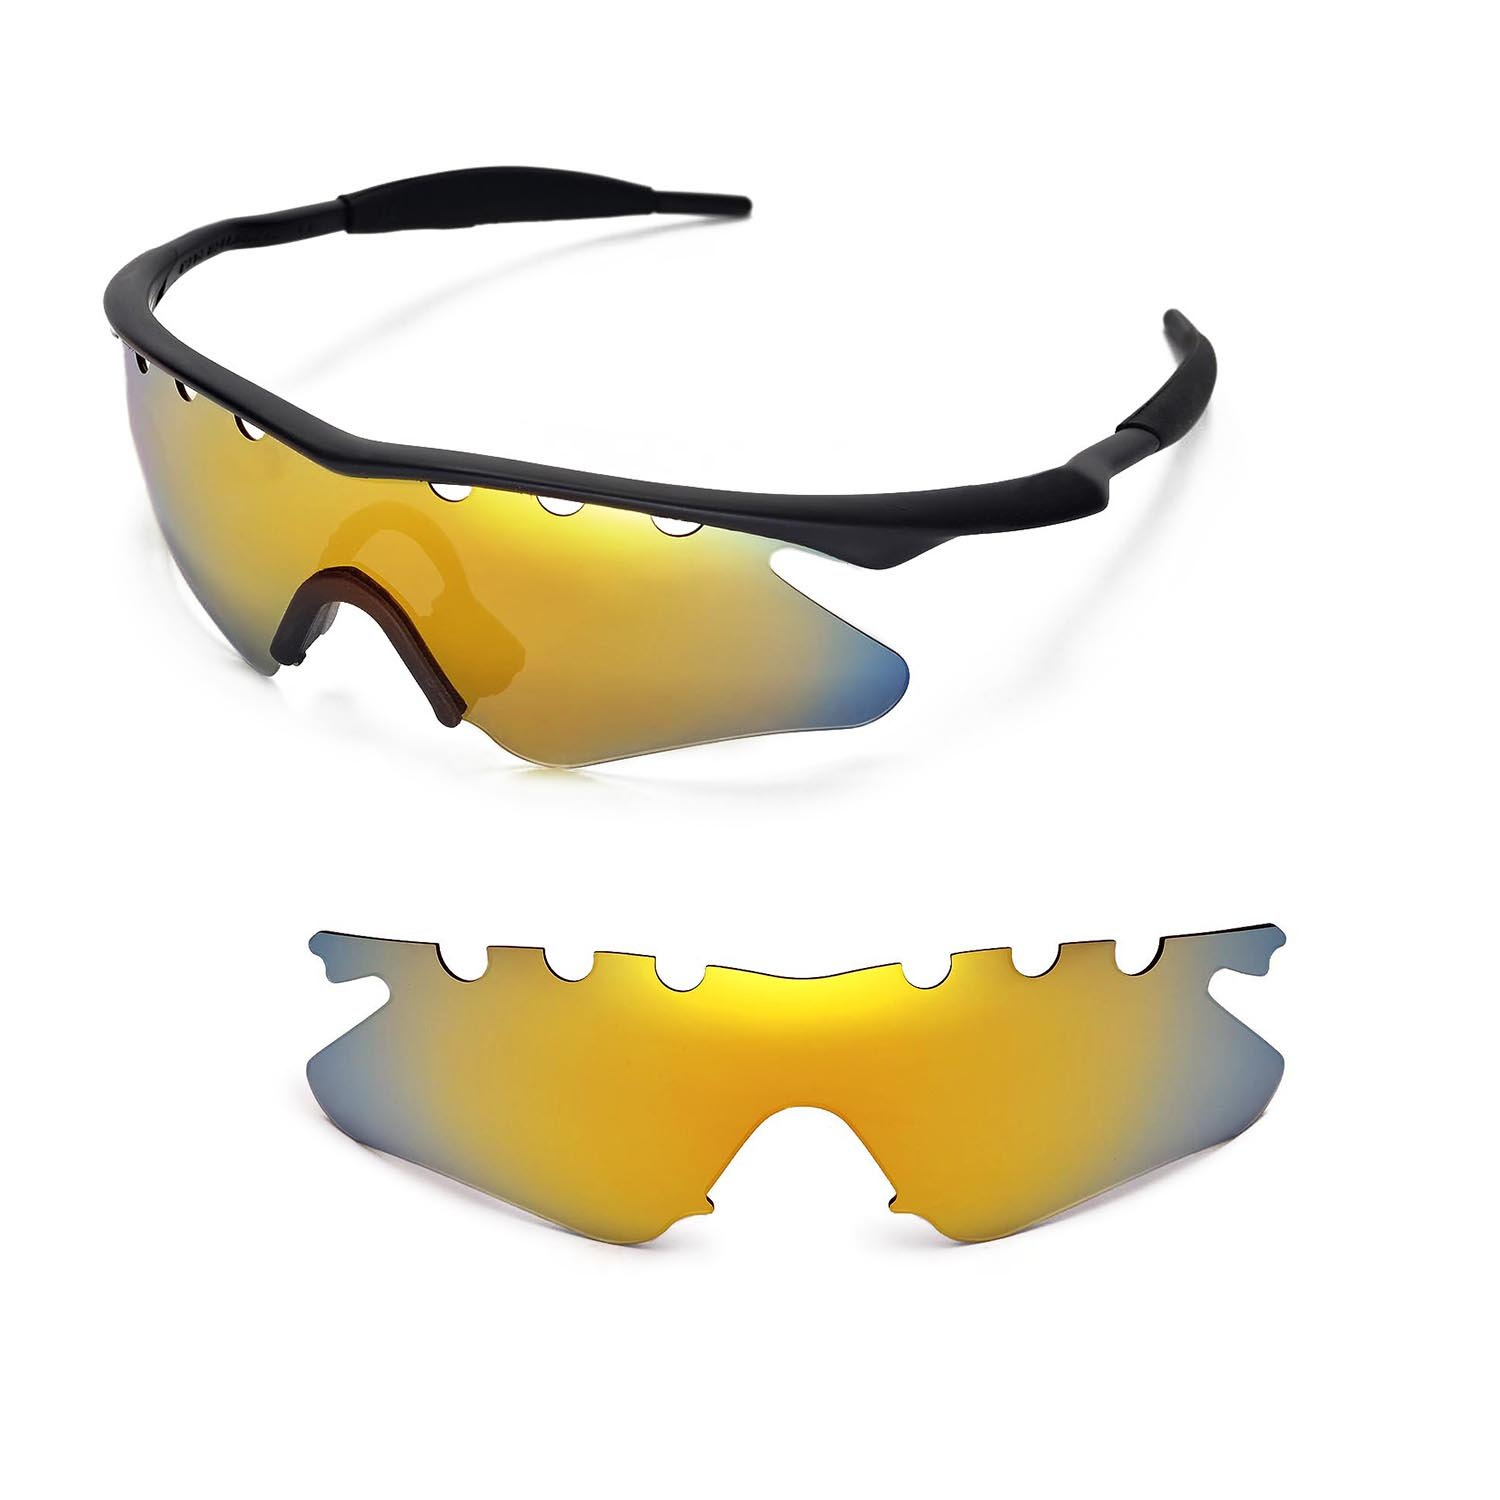 882bcdd233f Amazon.com   Walleva Vented Replacement Lenses for Oakley M Frame Hybrid  Sunglasses - Multiple Options Available (24K Gold - Polarized)   Sports    Outdoors